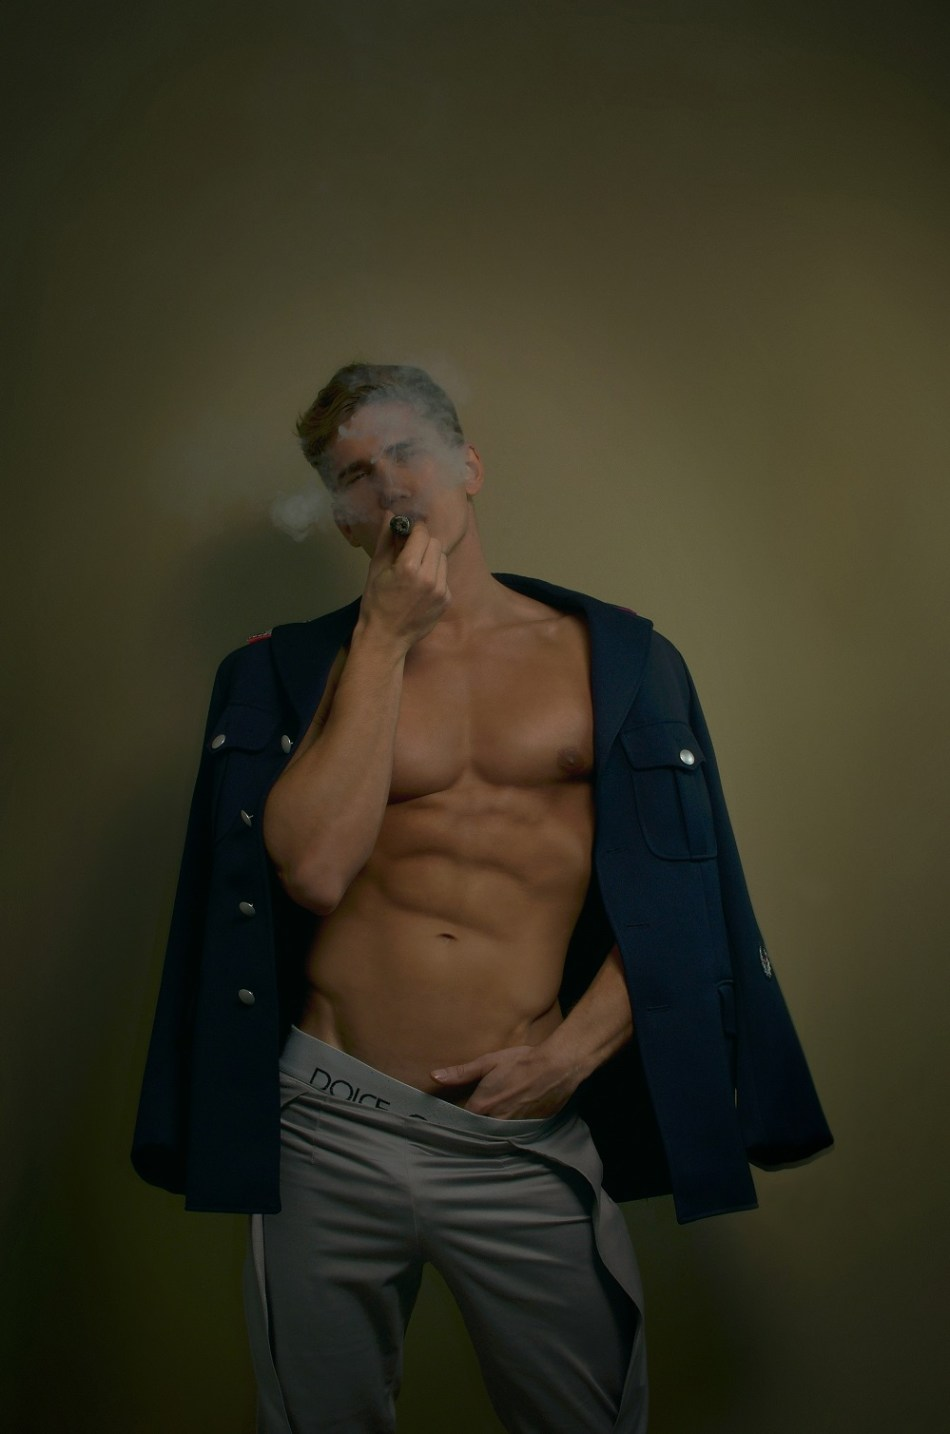 Shirtless Male Model, Objectification | dav.d photography